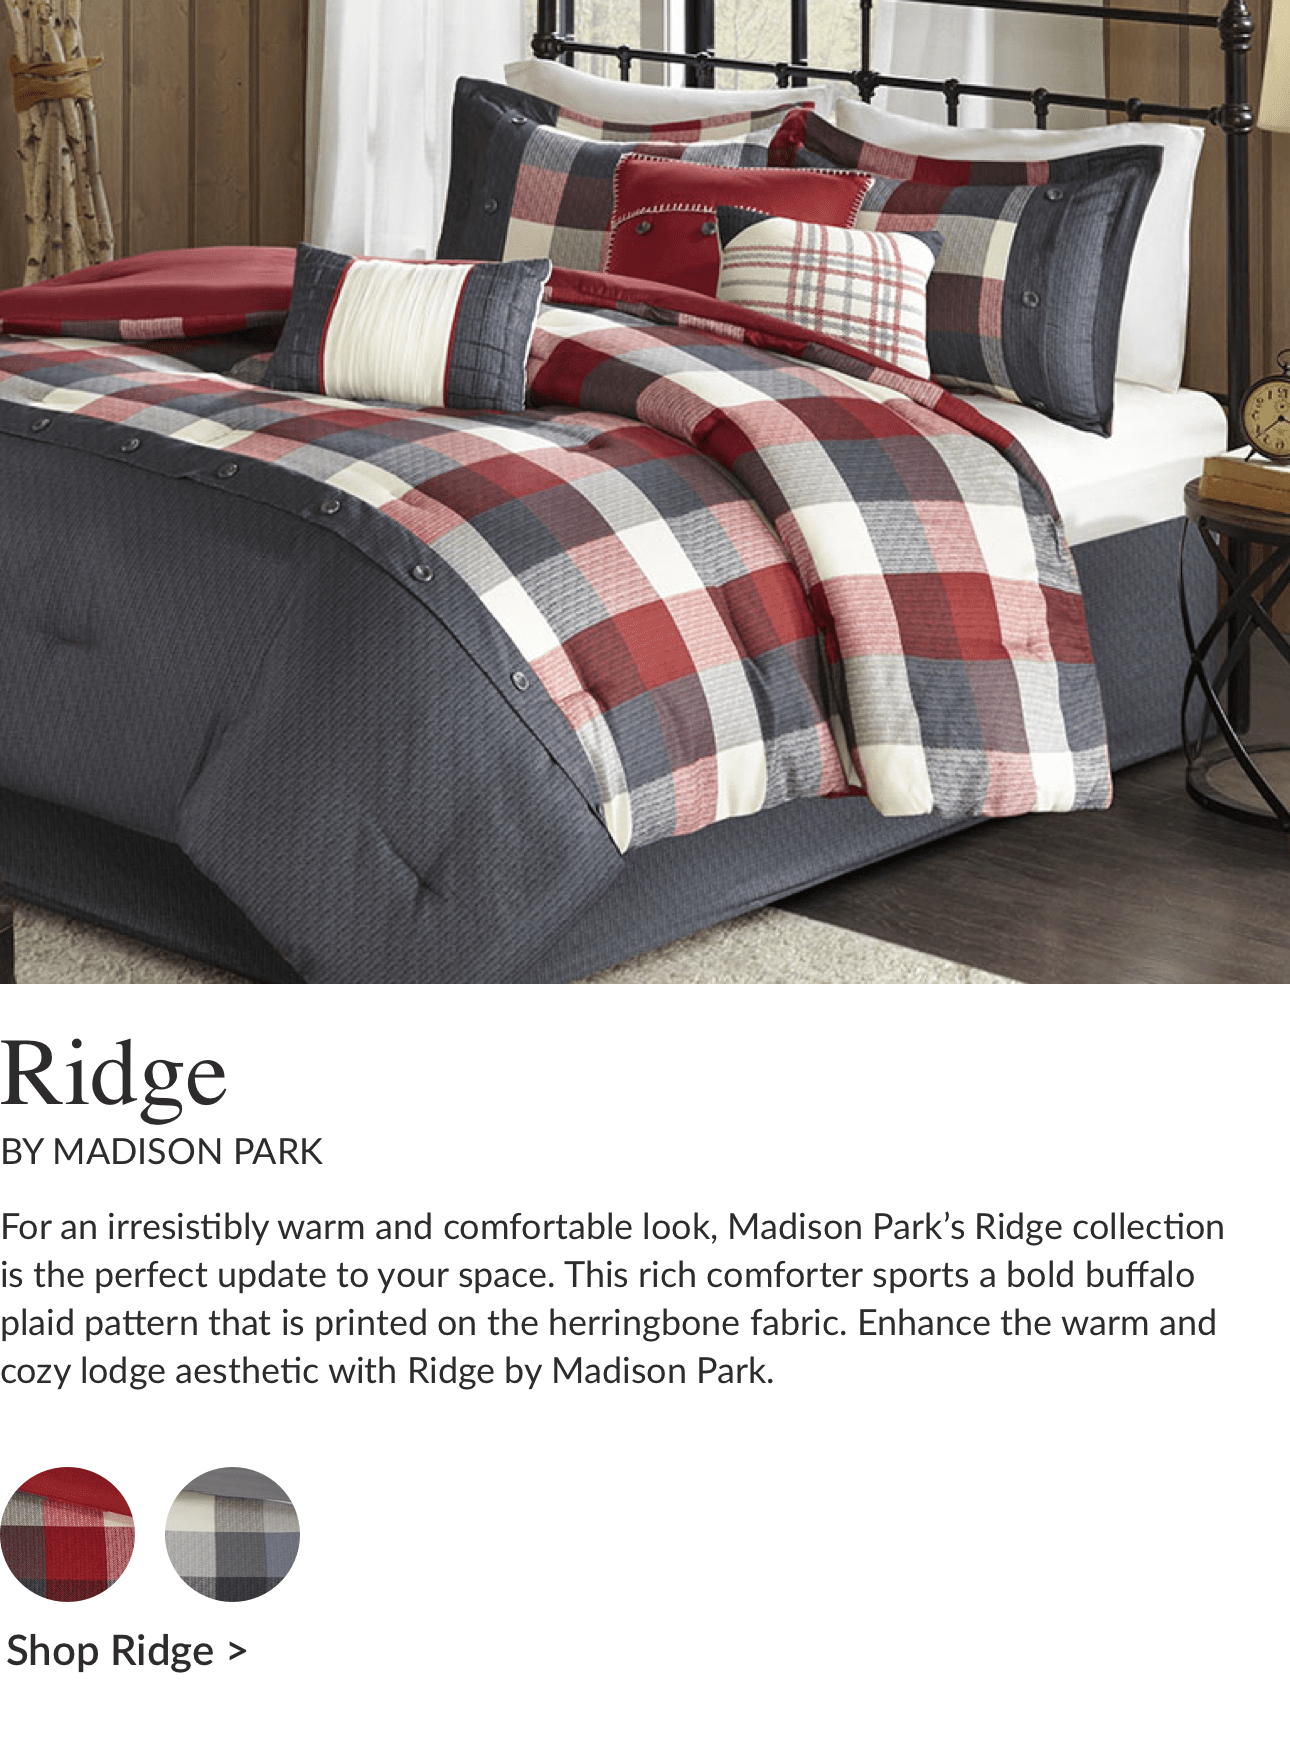 chair covers and linens in madison heights mi desk groupon designer bedding duvet more living